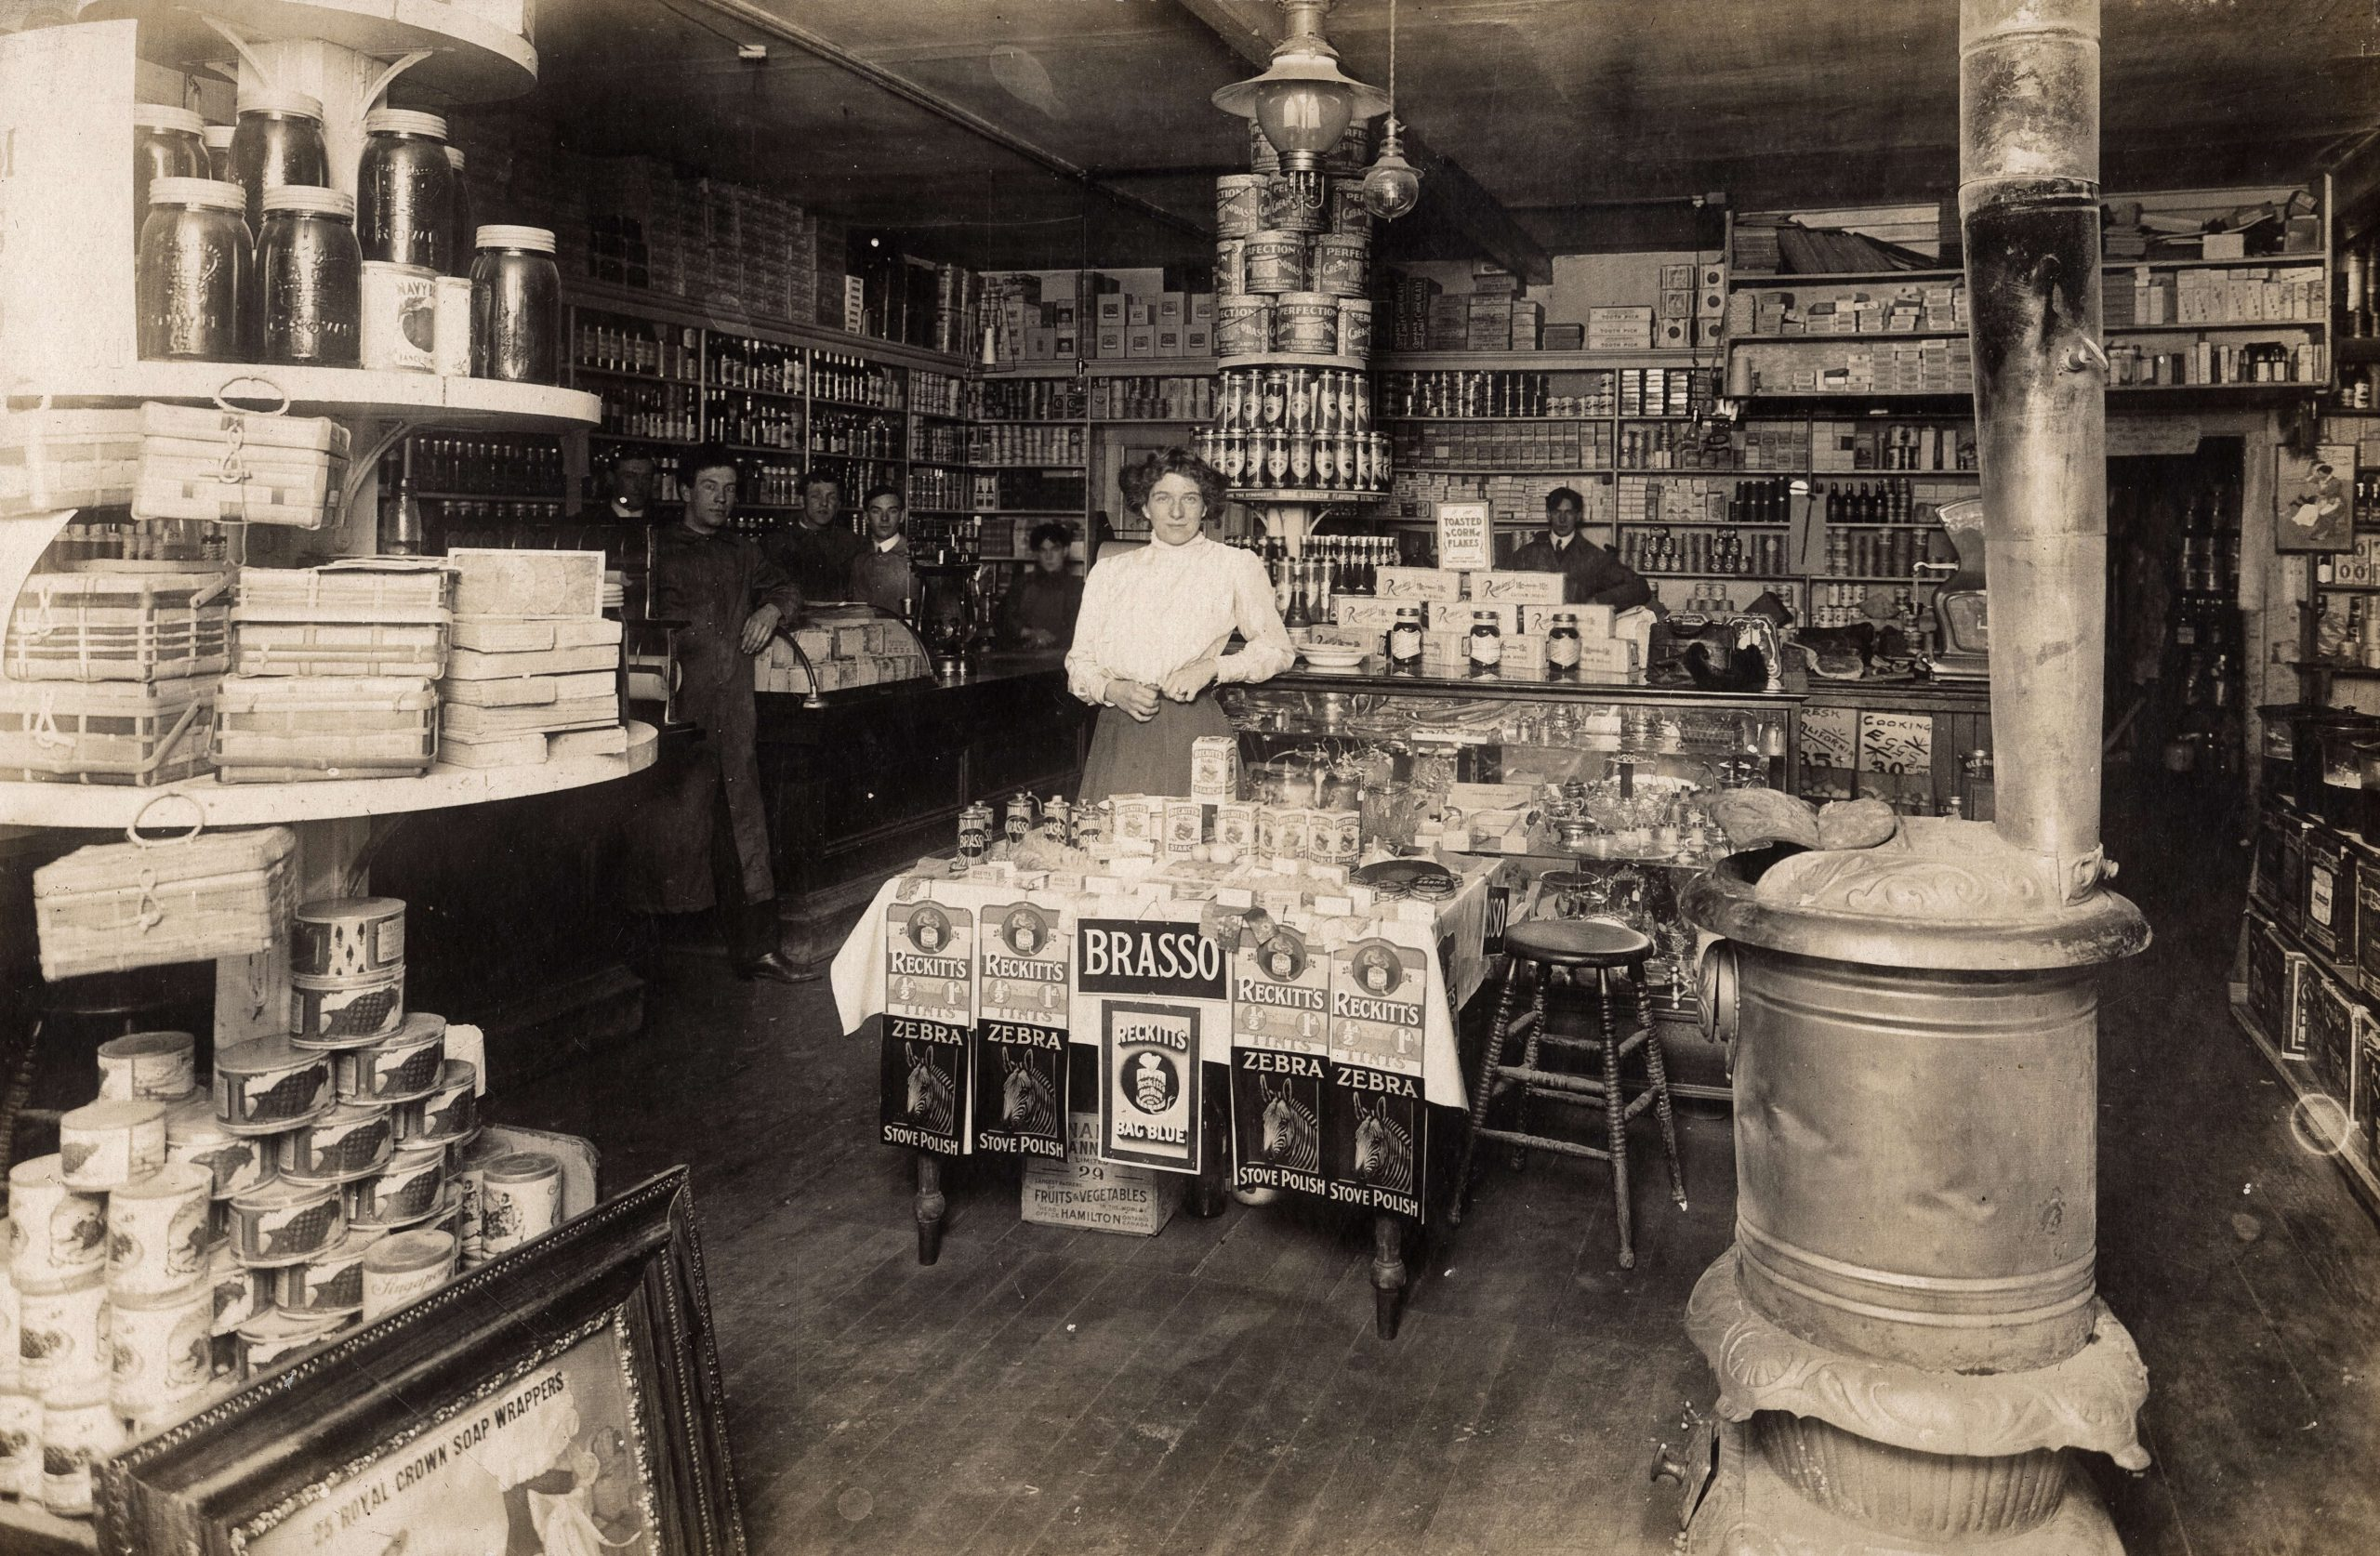 Inside the shop with tinned vegetables, corn flakes and cleaning polish. Reference code: AM1376-: 2017-028.1